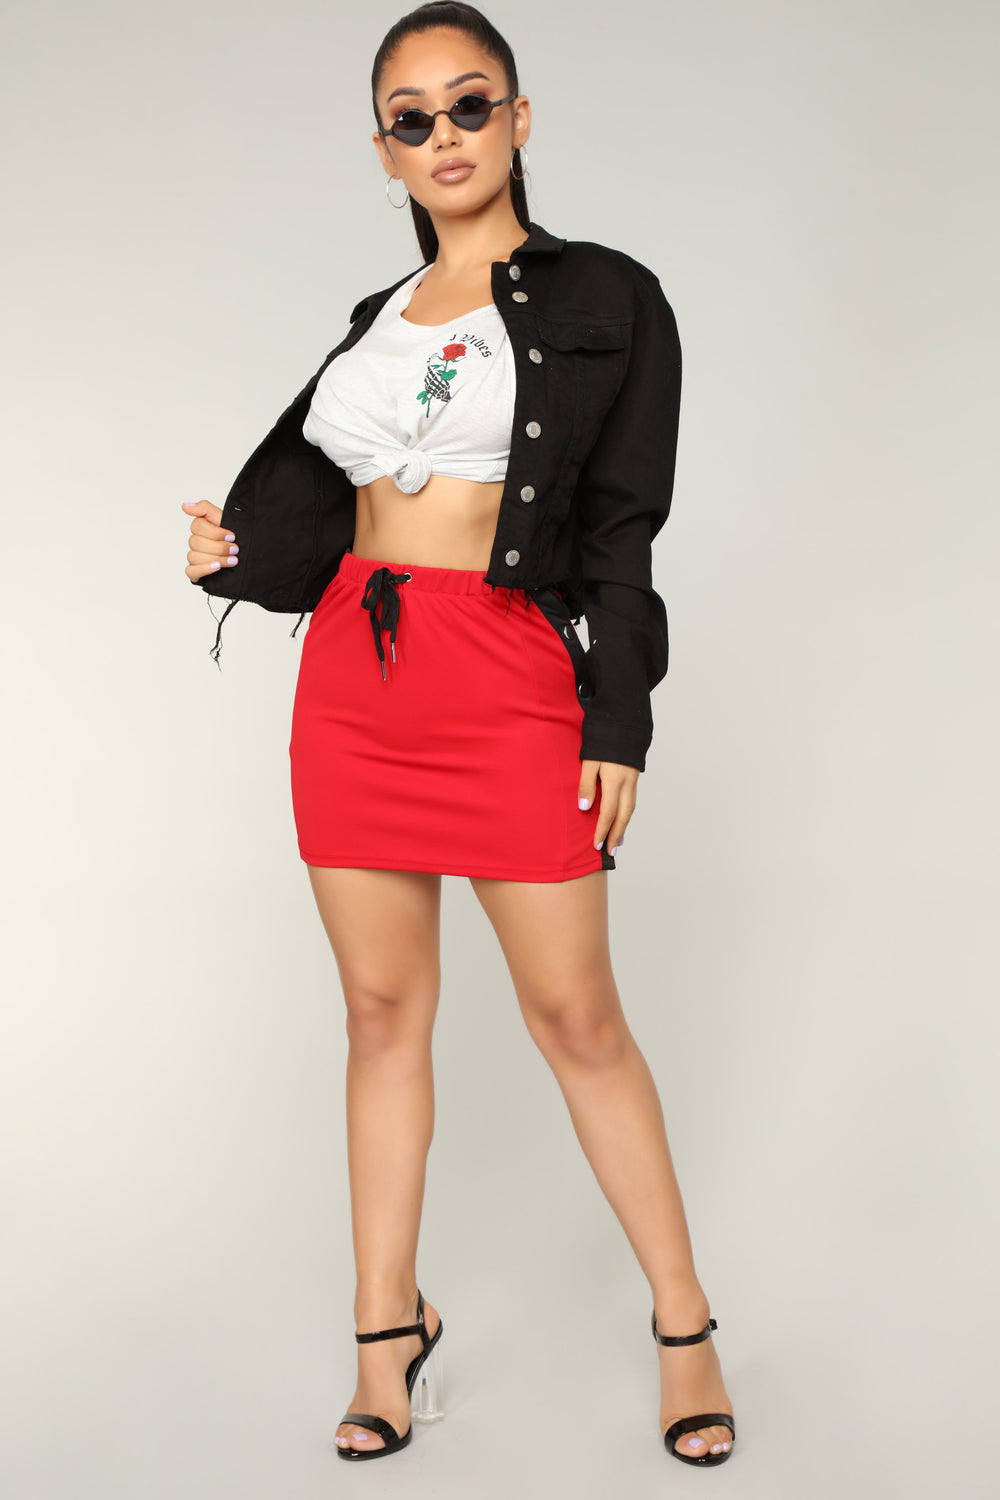 She Might Snap Skirts - Red /Black